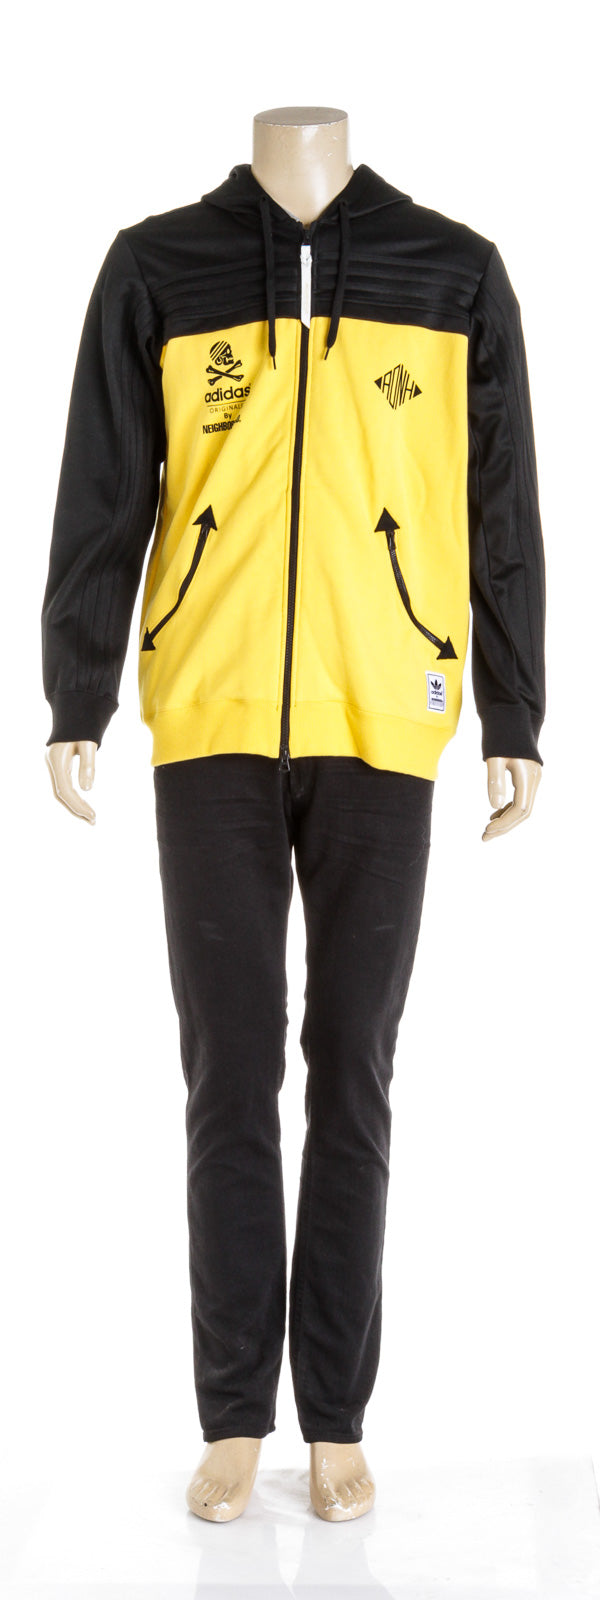 Adidas X Neighborhood Yellow Men's Zip Up (Size L)